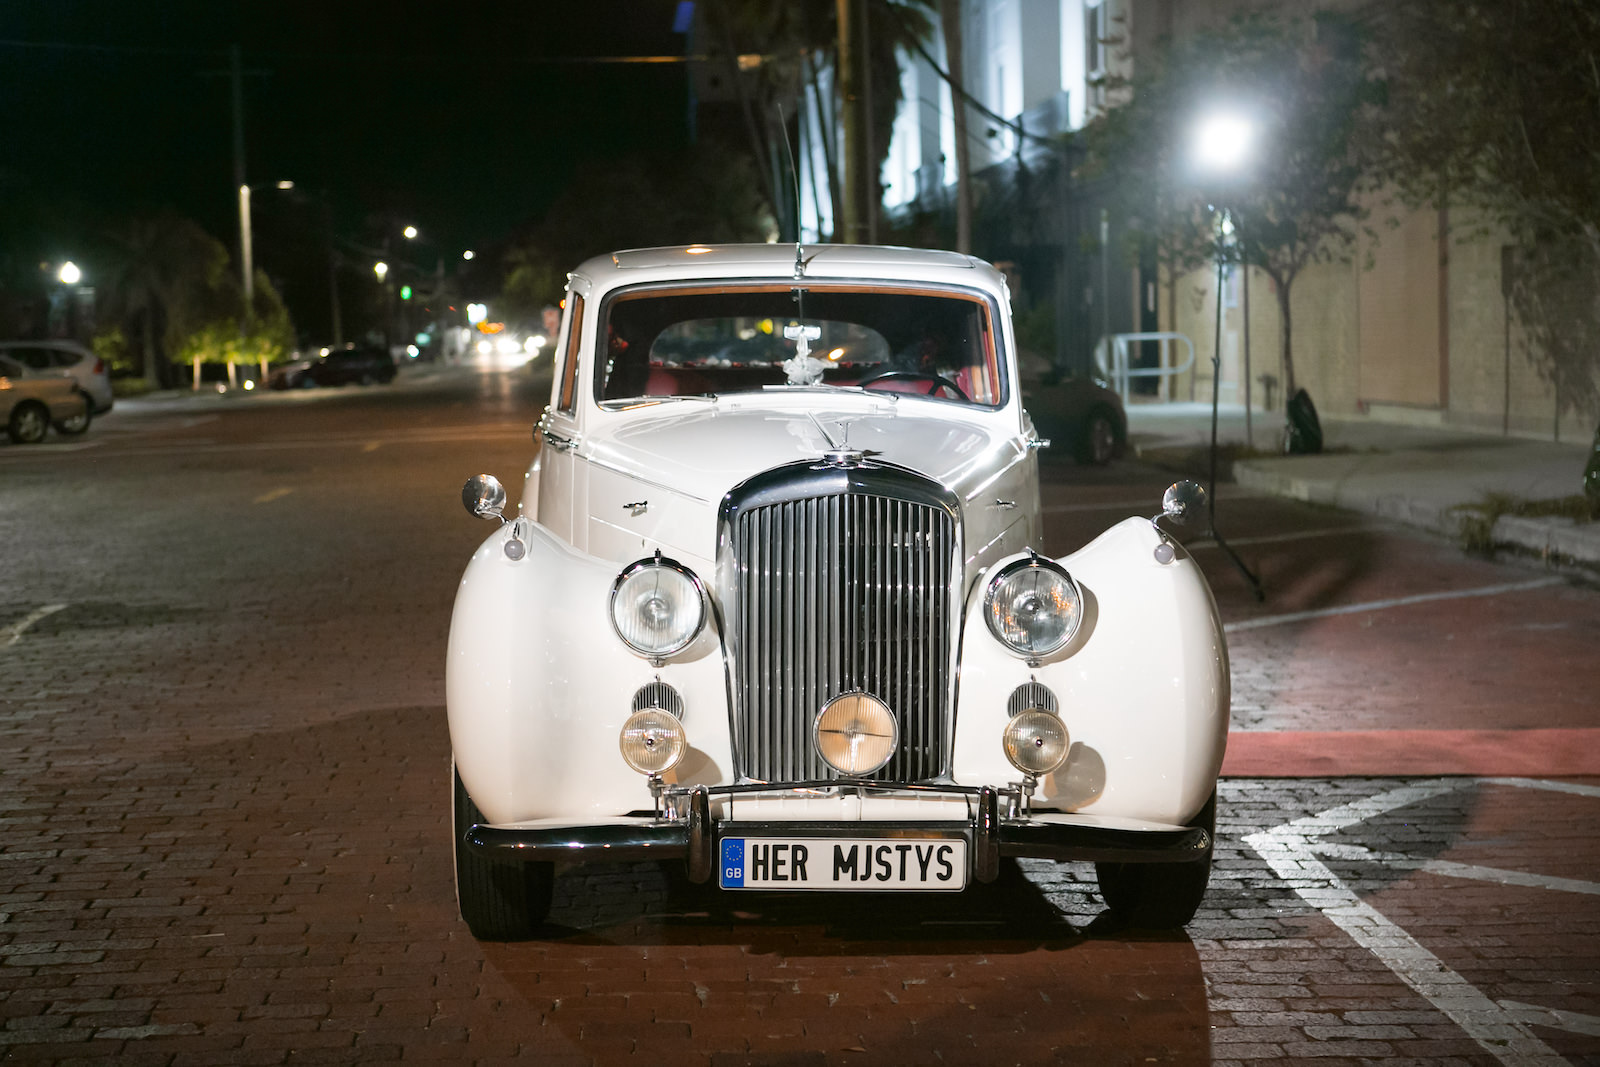 Bride and Groom Exit in Classic Car Vintage Rolls Royce White Bentley